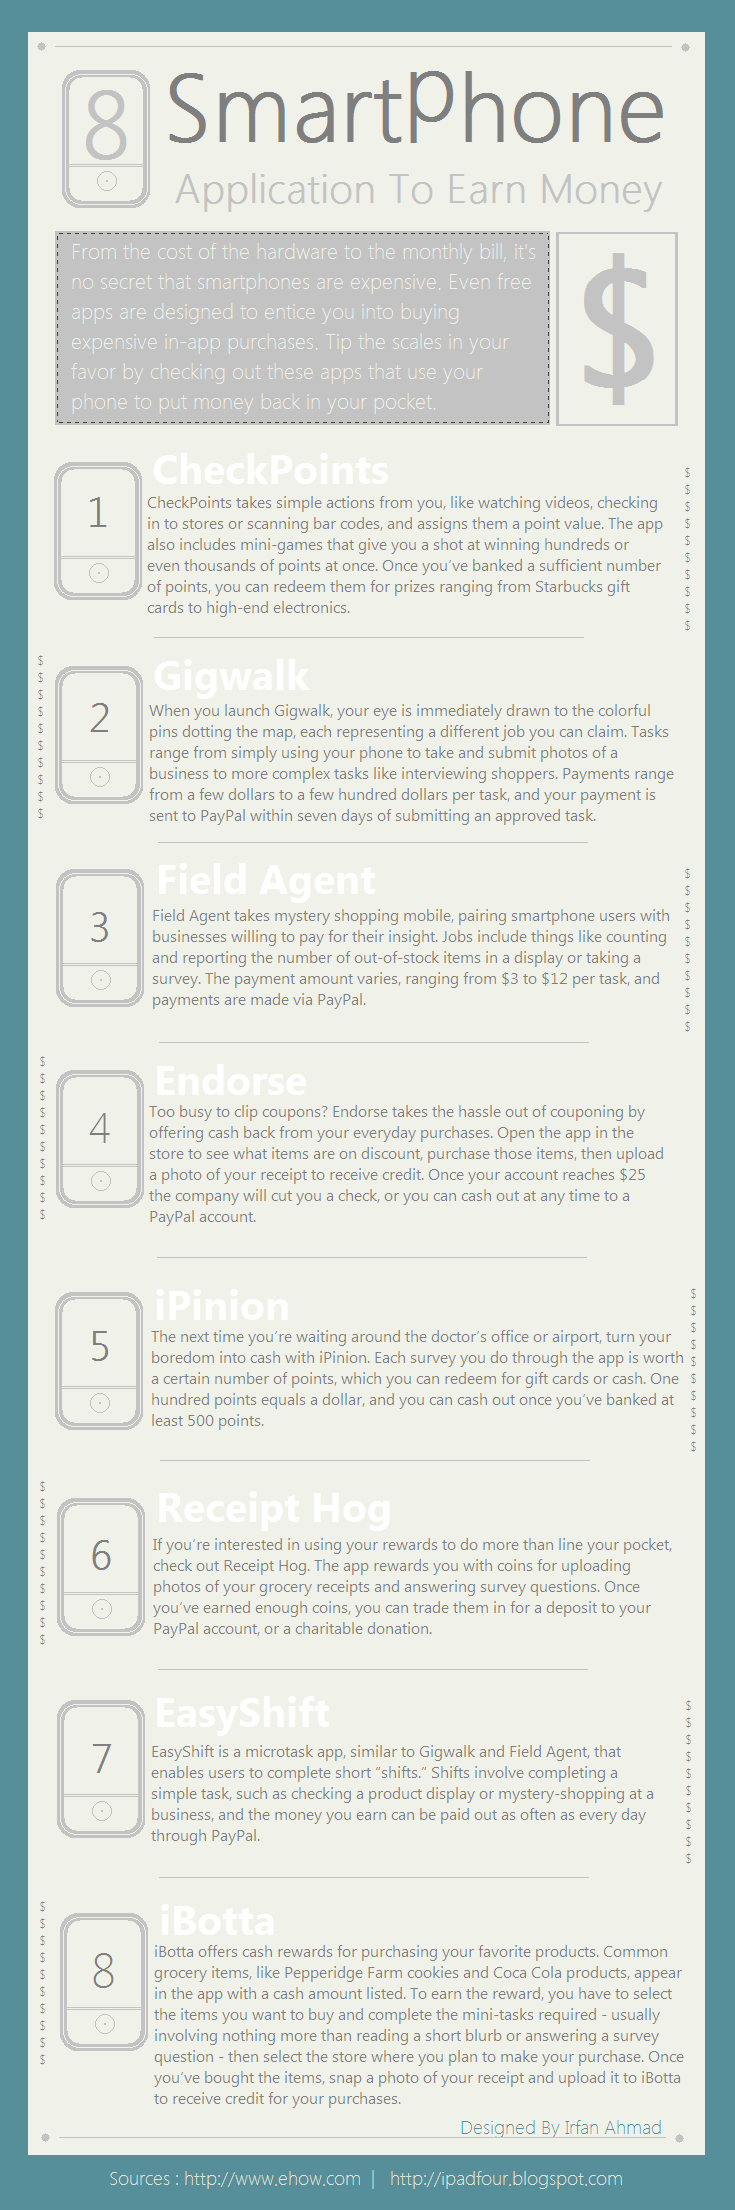 how to make quick money with smartphone application infographic